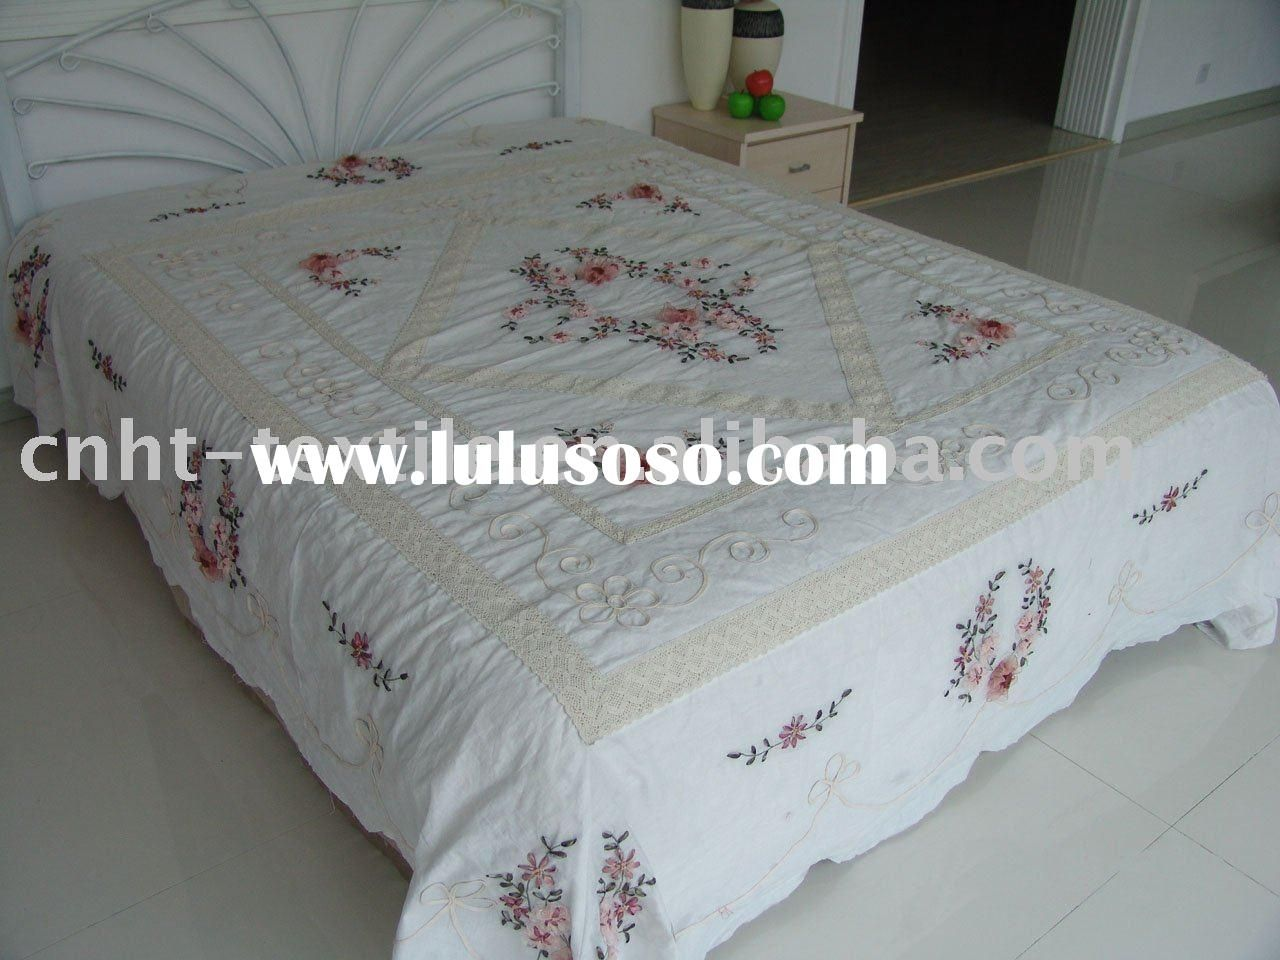 Ribbon embroidery bedspread designs - Ribbon Embroidery Designs